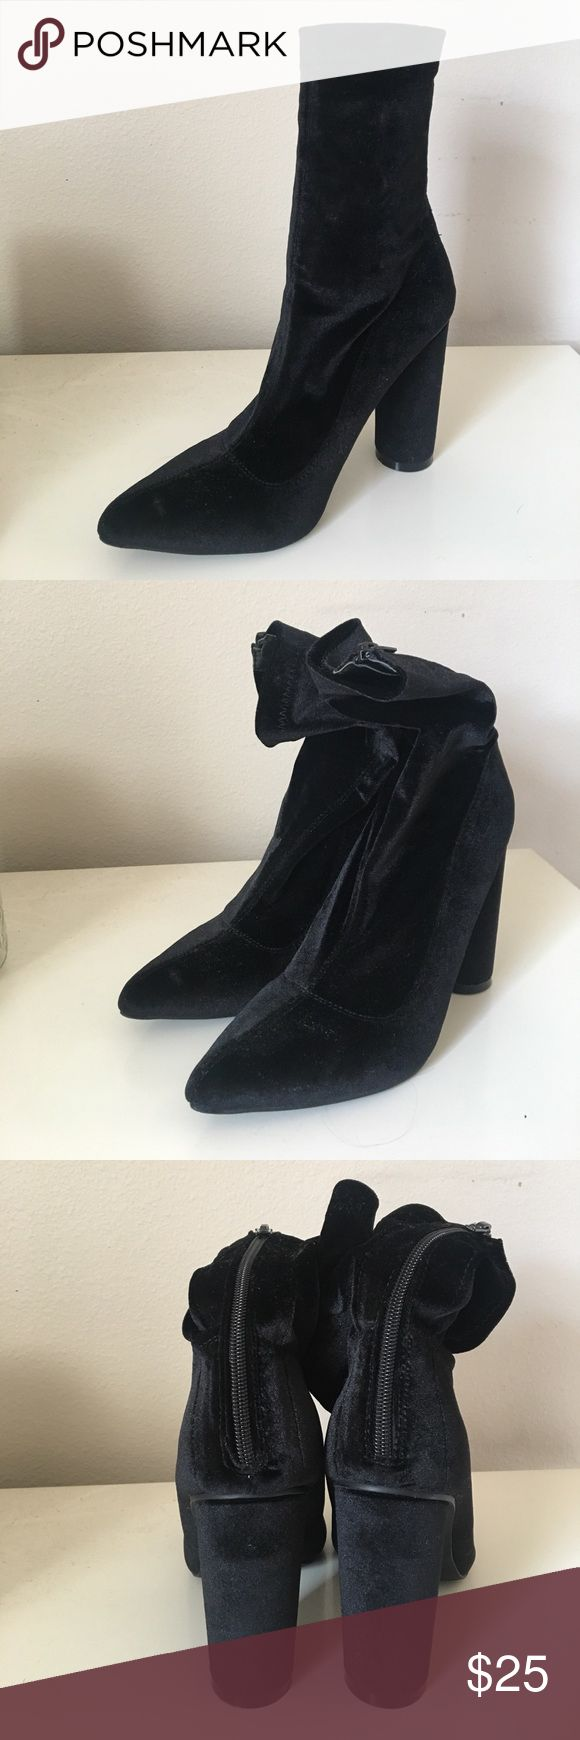 Velvet Booties Black velvet pointed toe booties with a chunk heel. These fit pretty tight around the ankles and go farther up the calf. Originally bought from Amazon, never worn! Liliana Shoes Ankle Boots & Booties